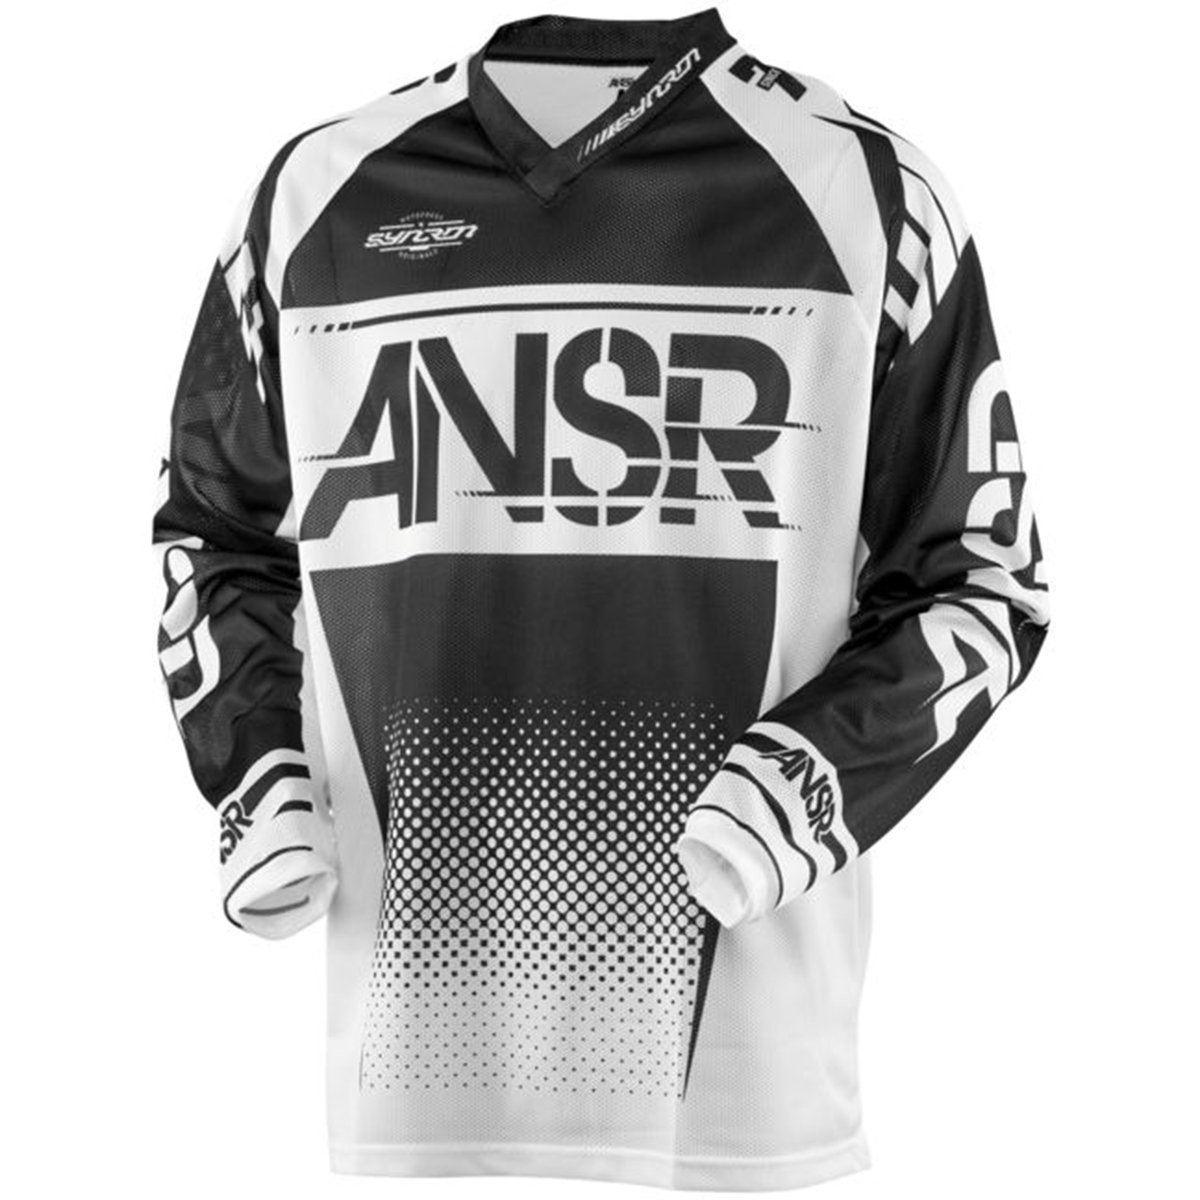 Answer Racing A17.5 Syncron Air Men's Off-Road Motorcycle Jerseys - Black/White/X-Large